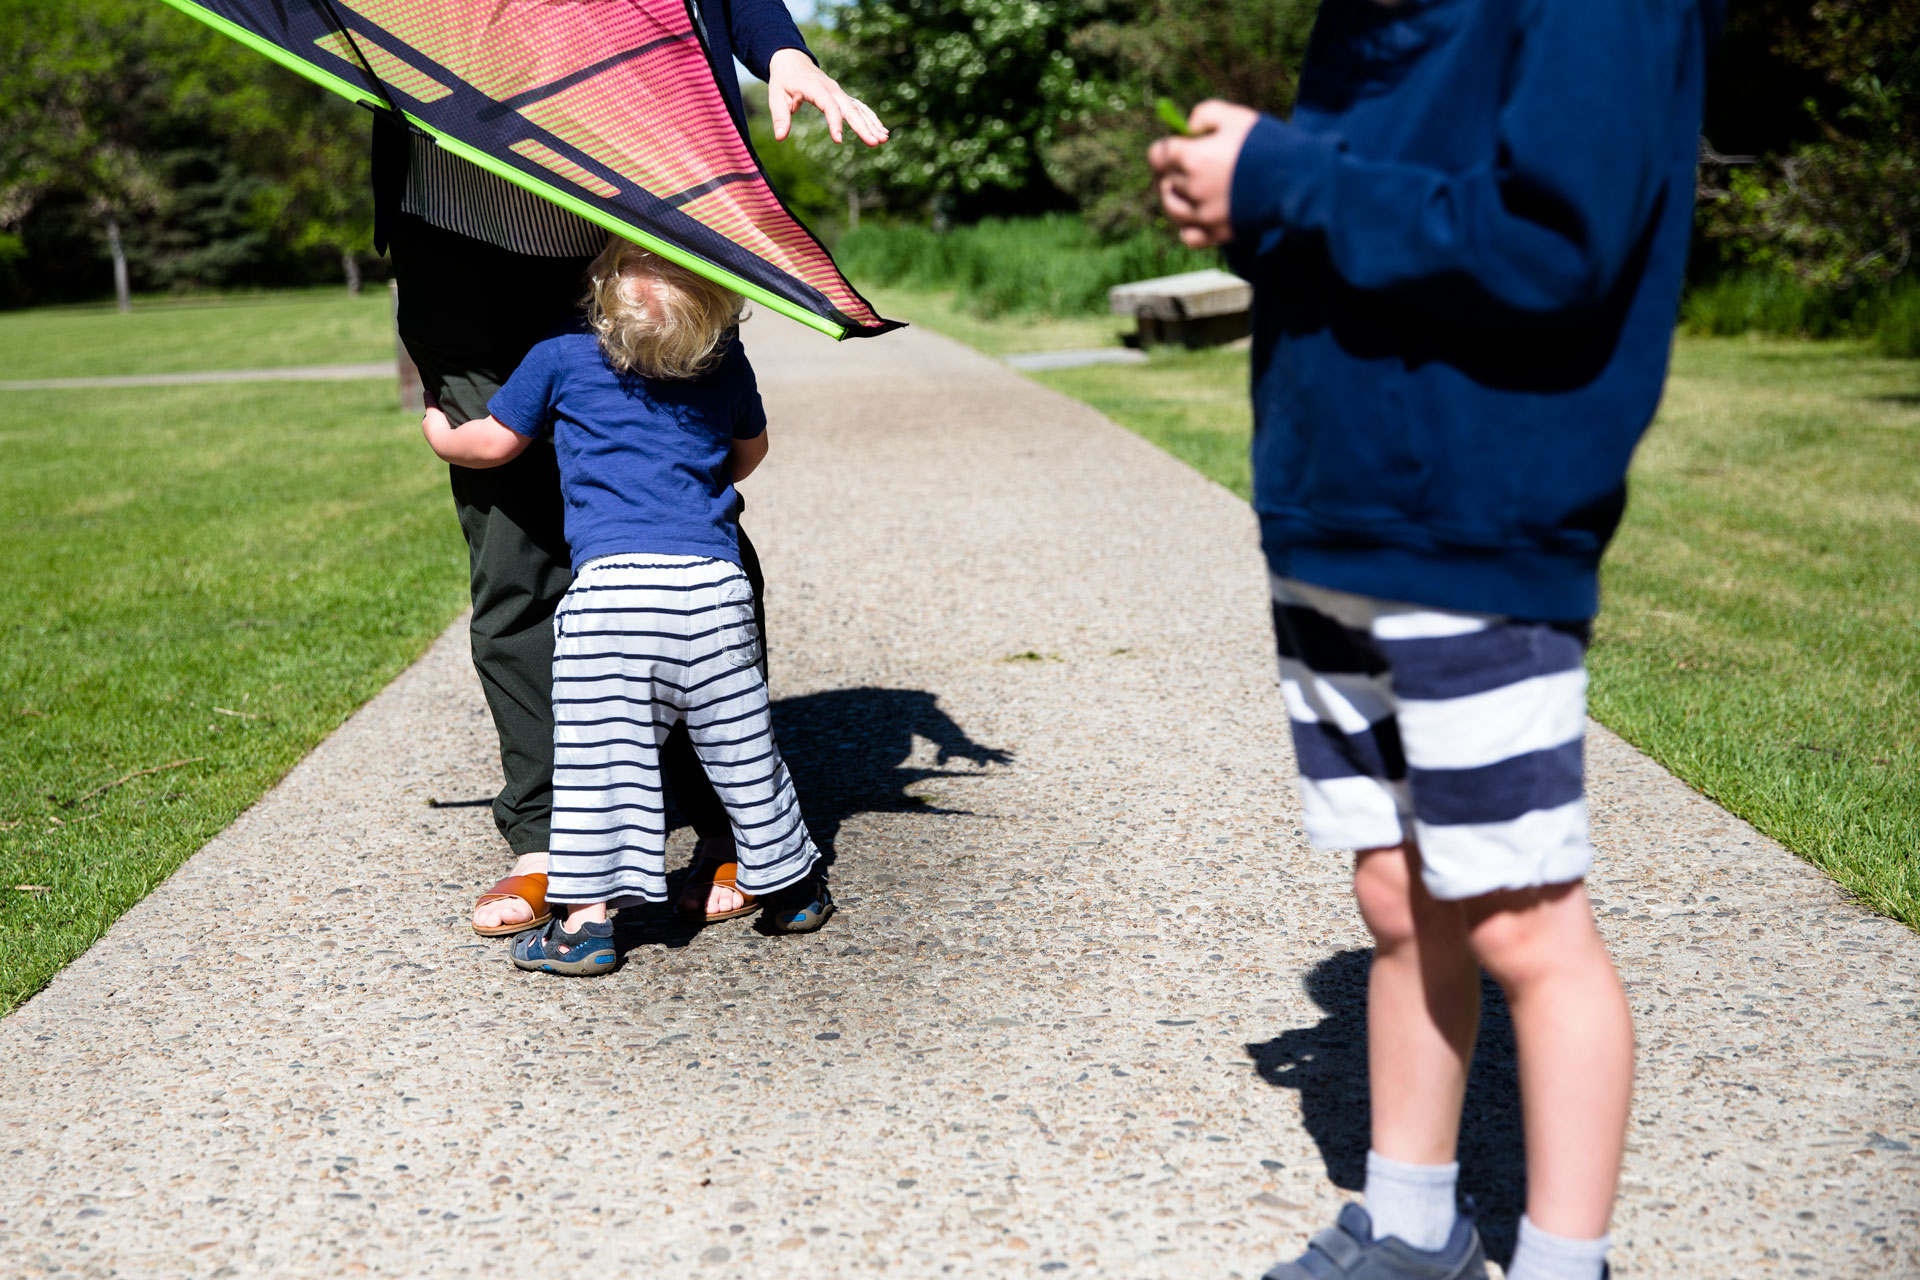 Mom holding kite while little brother looks up at her and older brother plays with his hands to the side